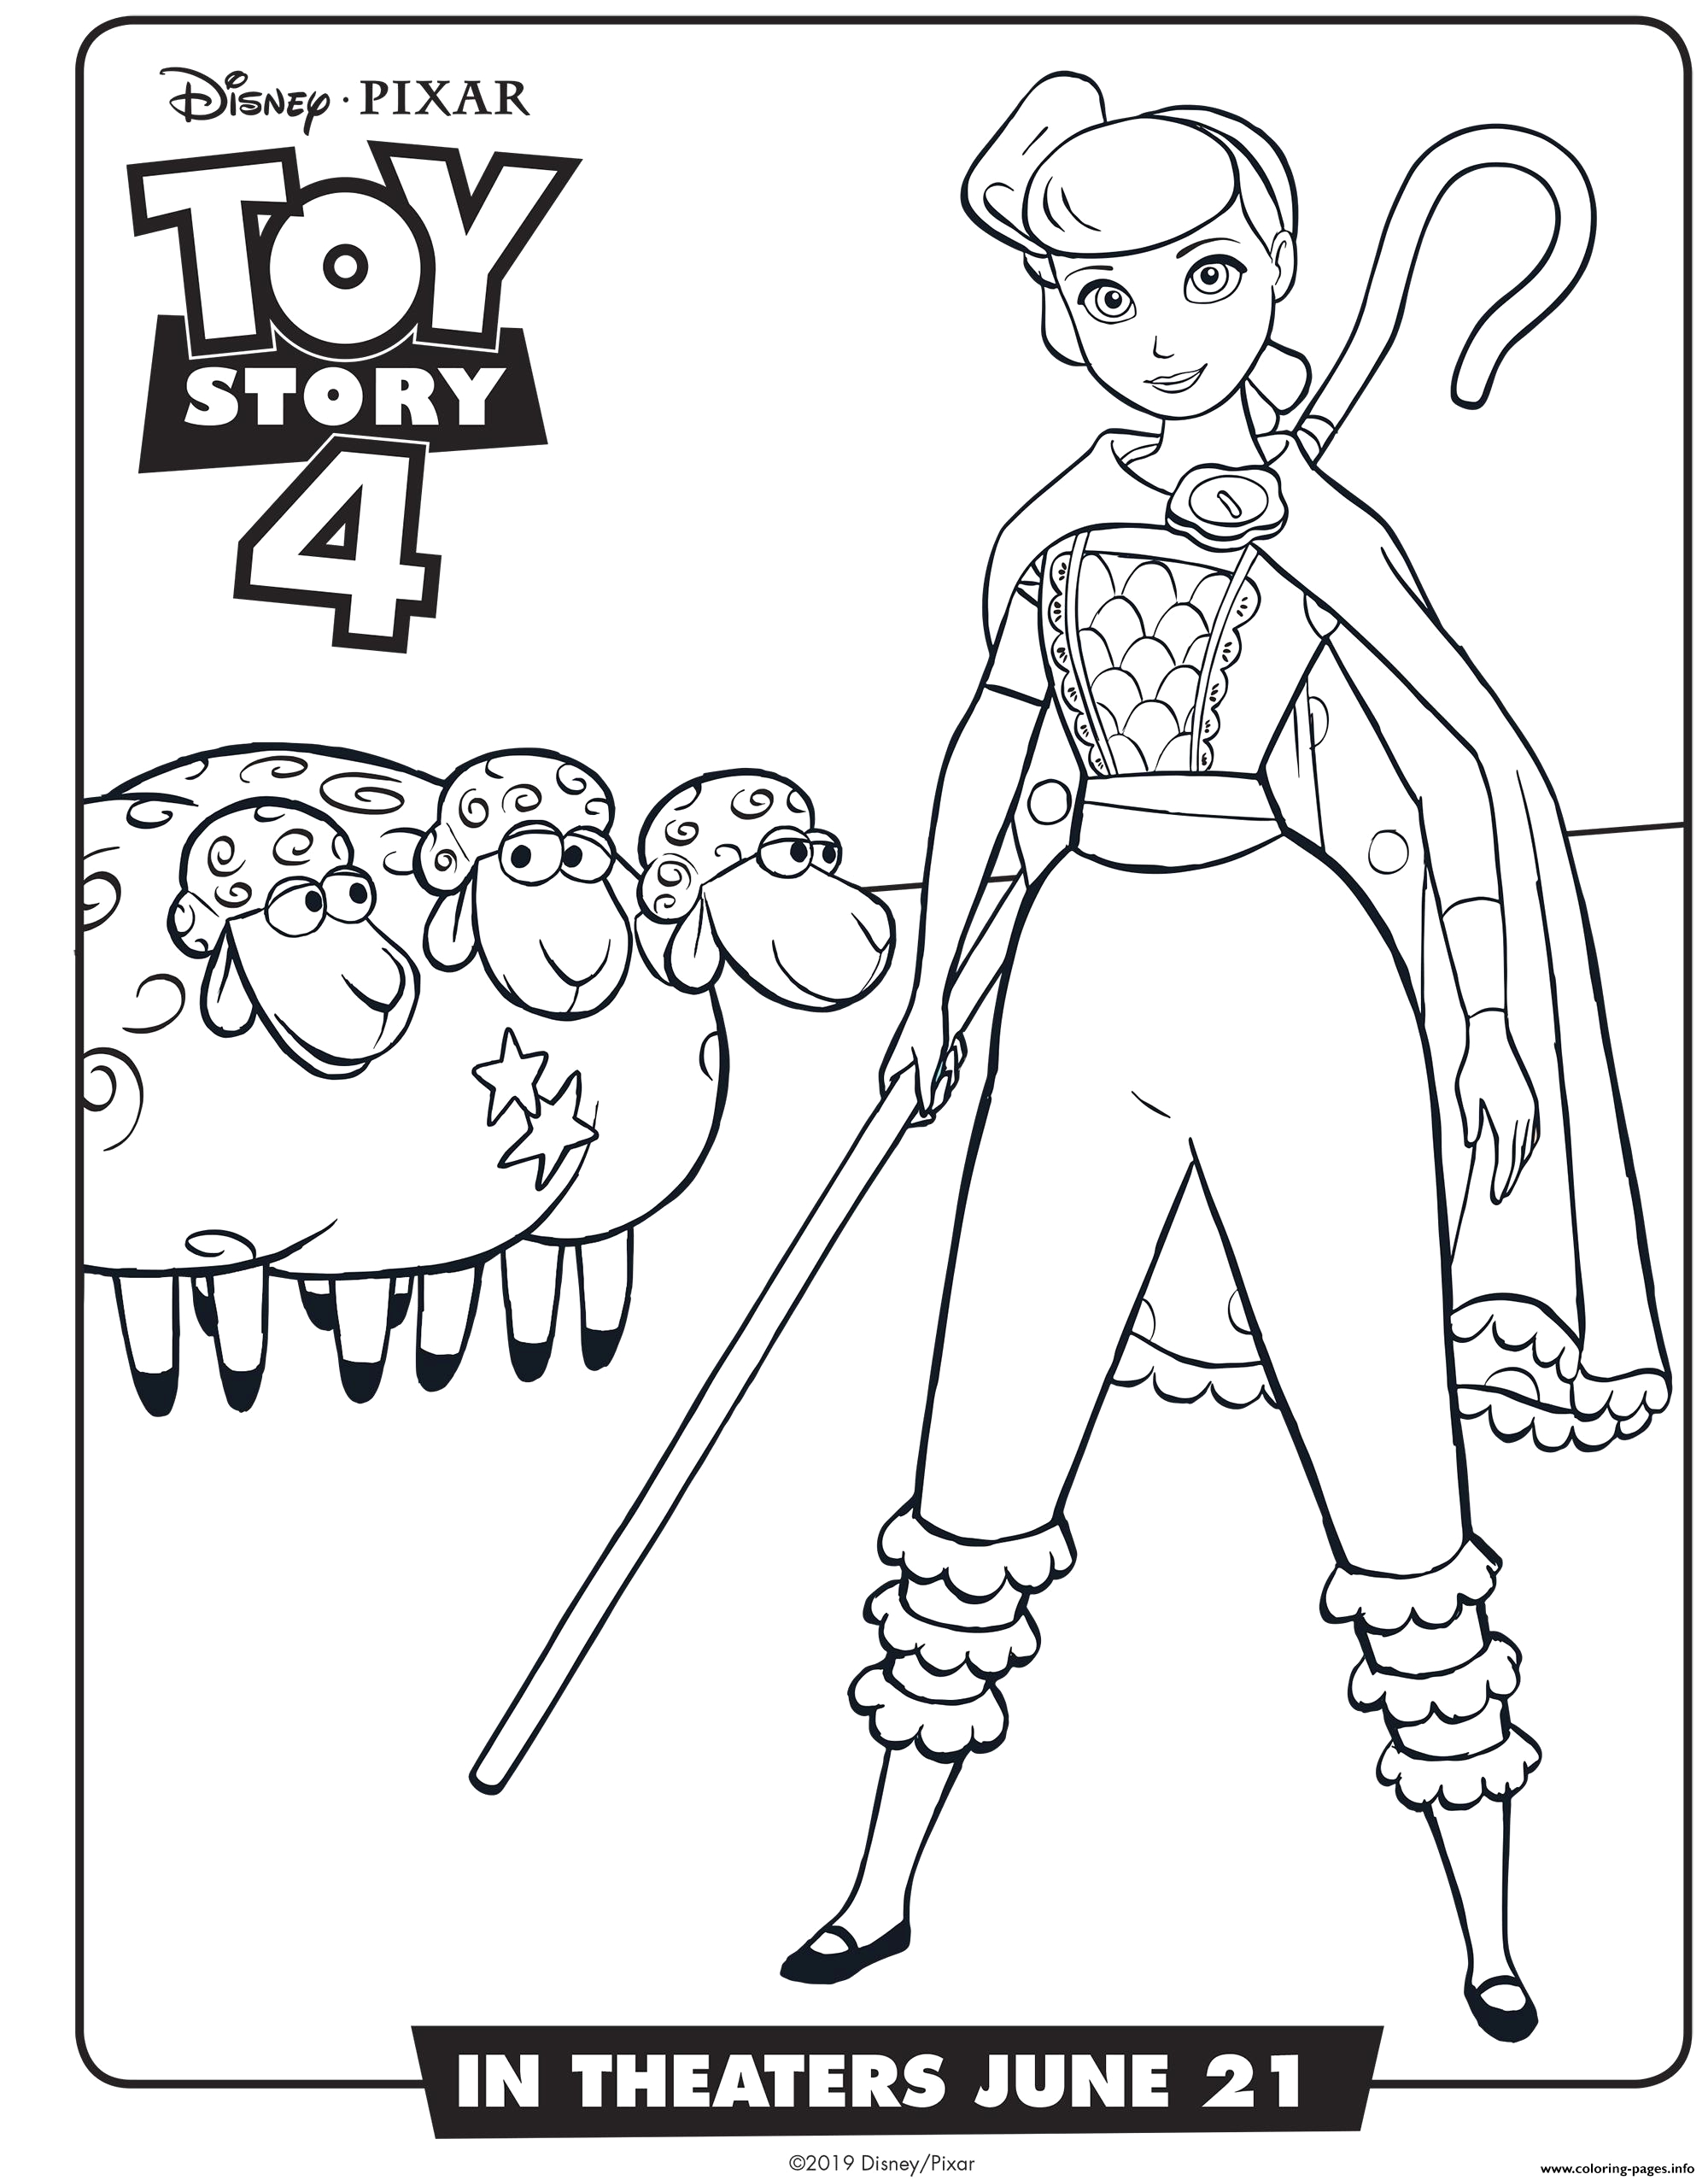 Toy Story 4 Coloring Pages Bo Peep toy Story 4 Bo Peep Coloring Pages Printable